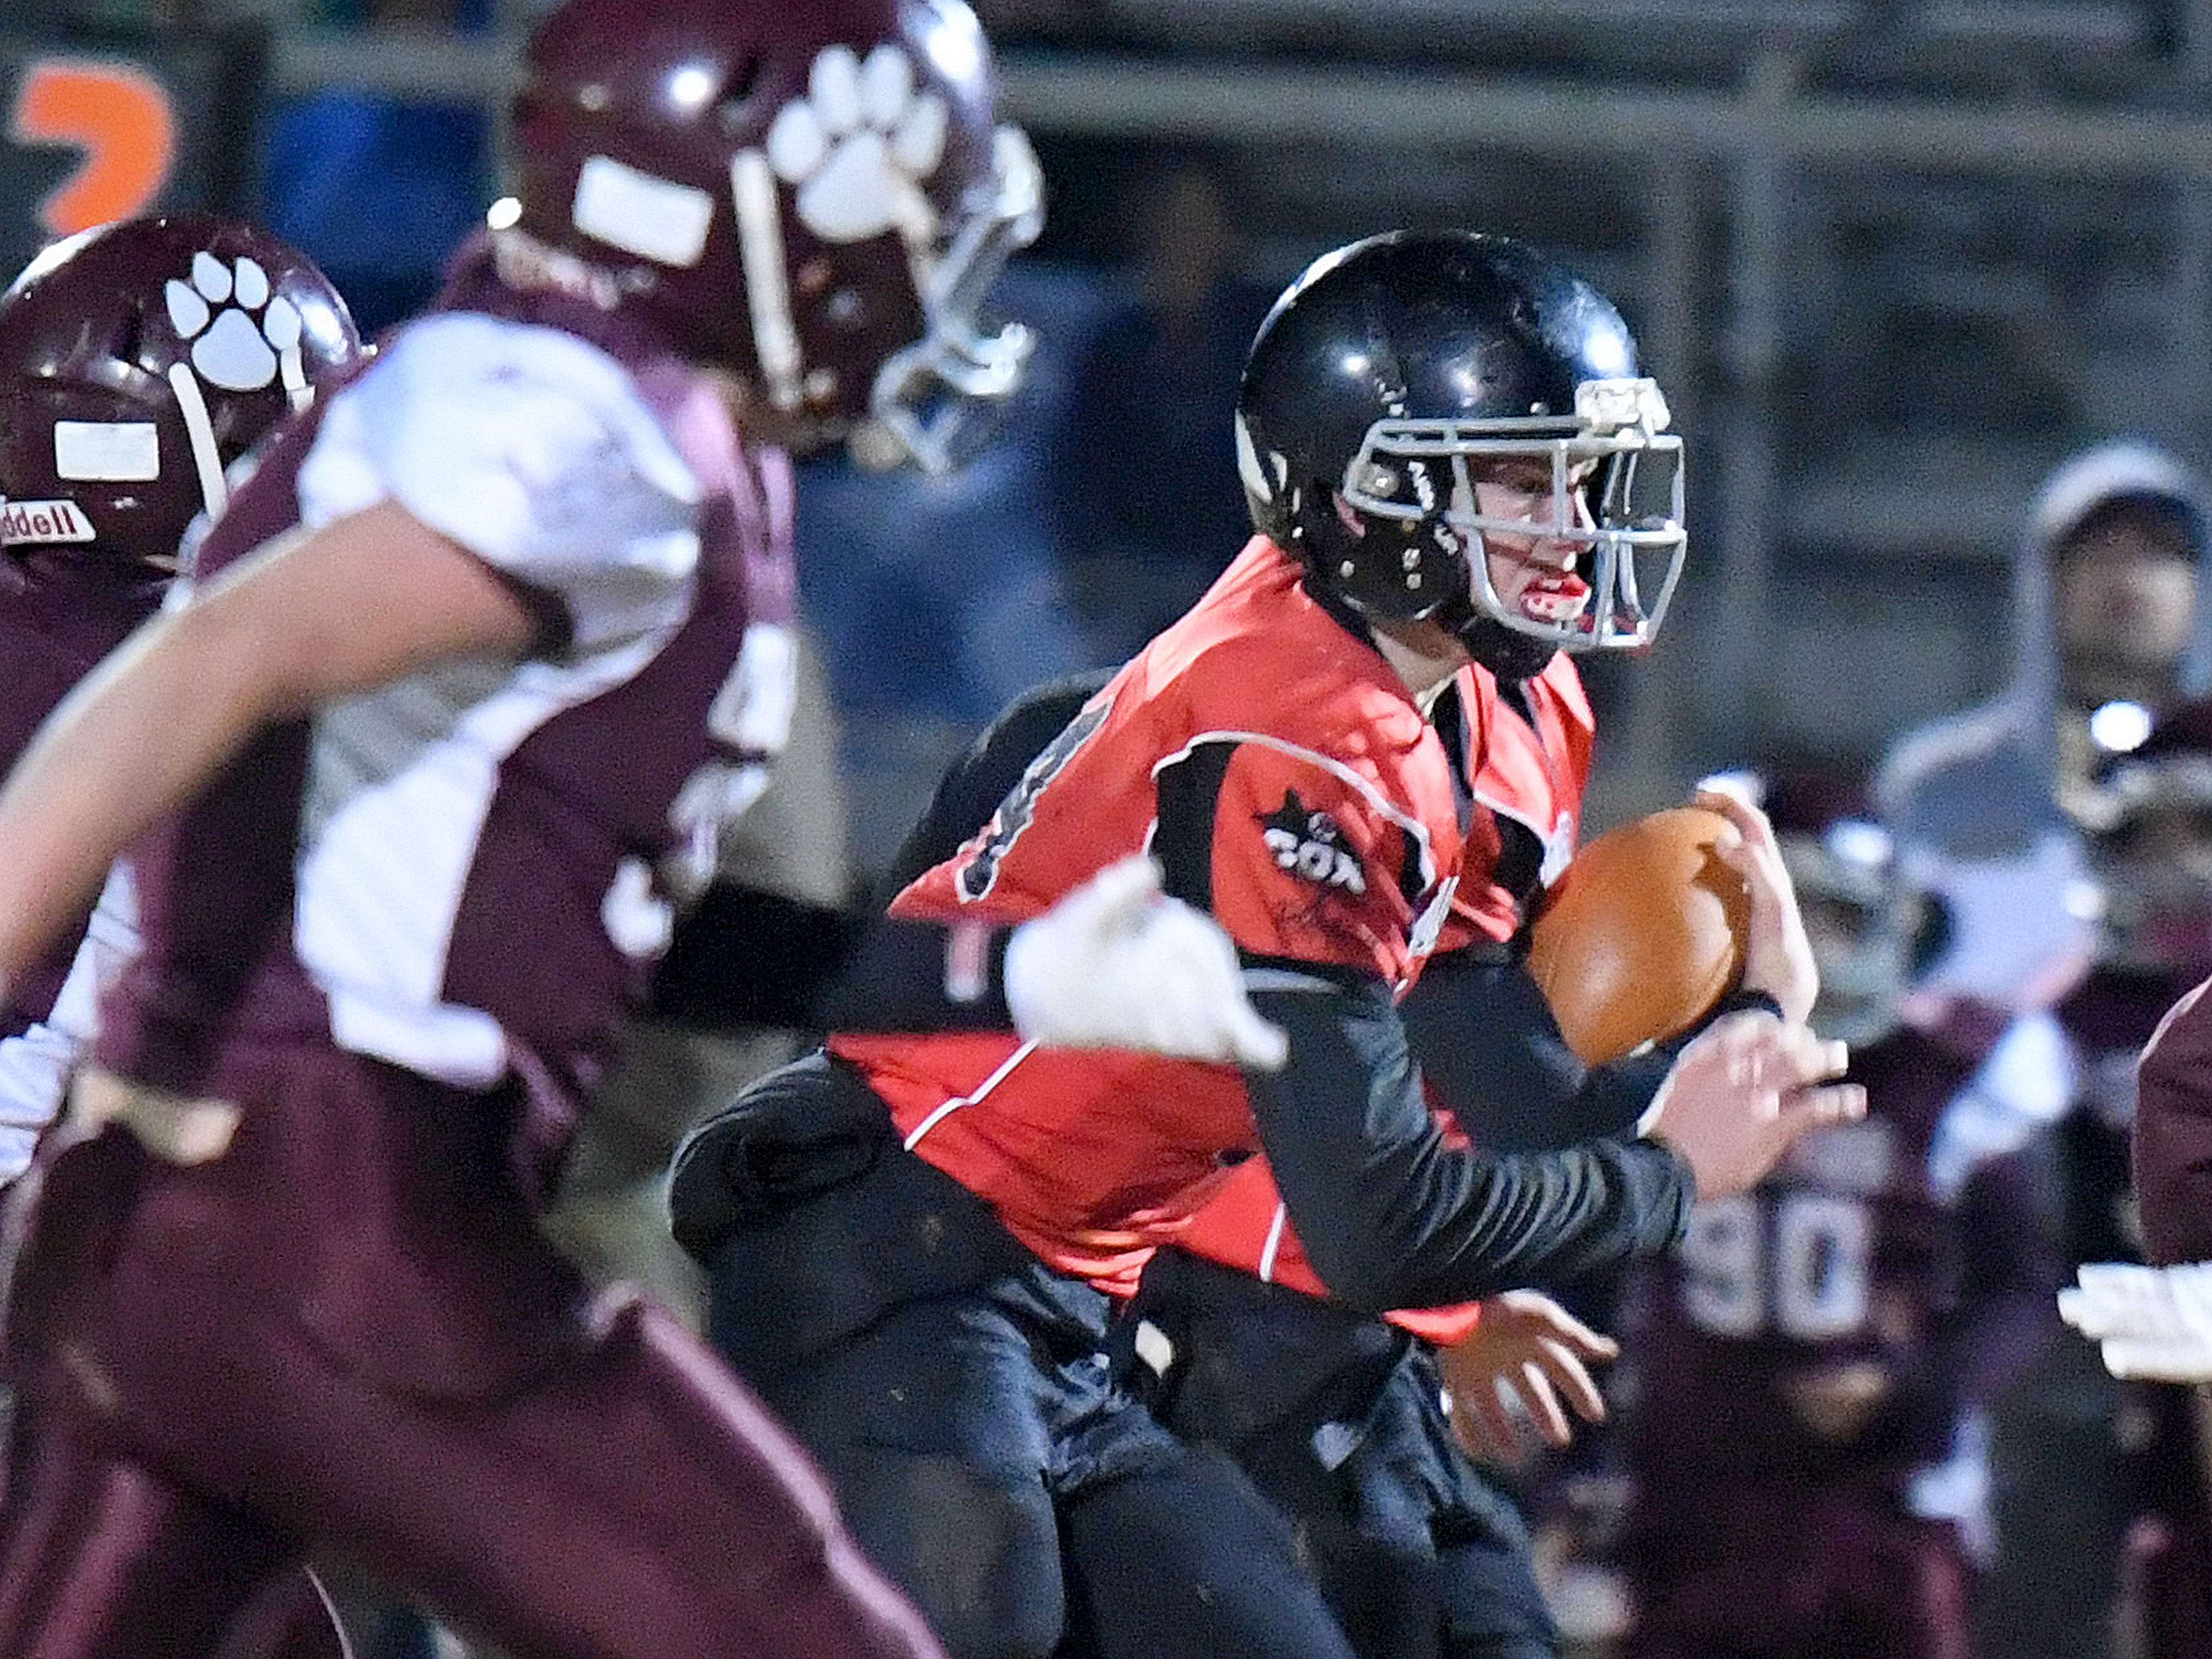 Riverheads' Cayden Cook Cash runs the football during the Augusta County Quarterback Club Seniors Super Bowl in Fishersville on Sunday, Nov. 11, 2018.  RIverheads defeats Stuarts Draft, 38-6.